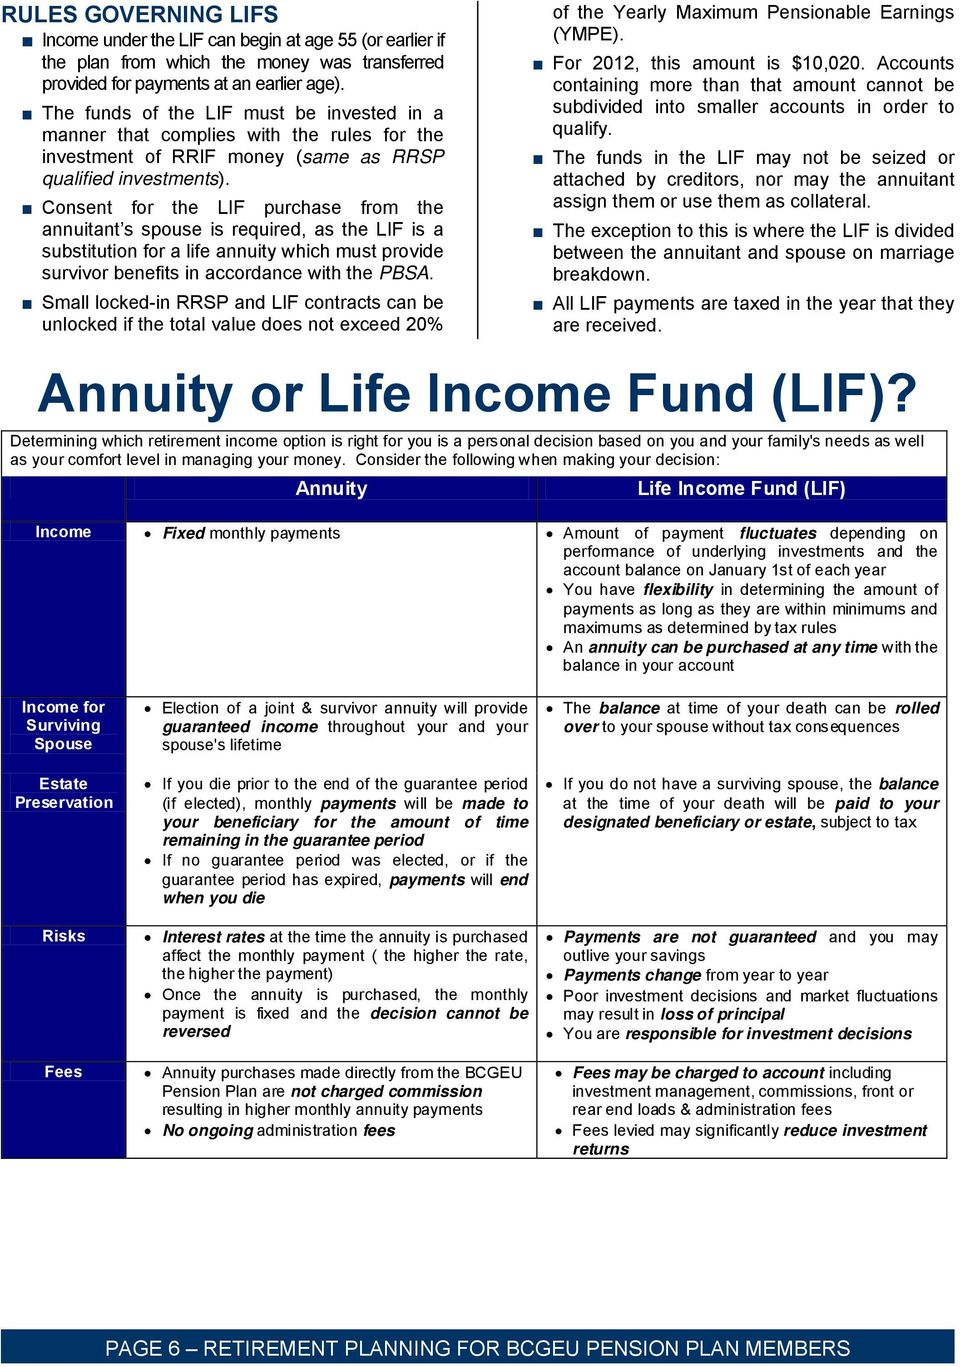 Consent for the LIF purchase from the annuitant s spouse is required, as the LIF is a substitution for a life annuity which must provide survivor benefits in accordance with the PBSA.